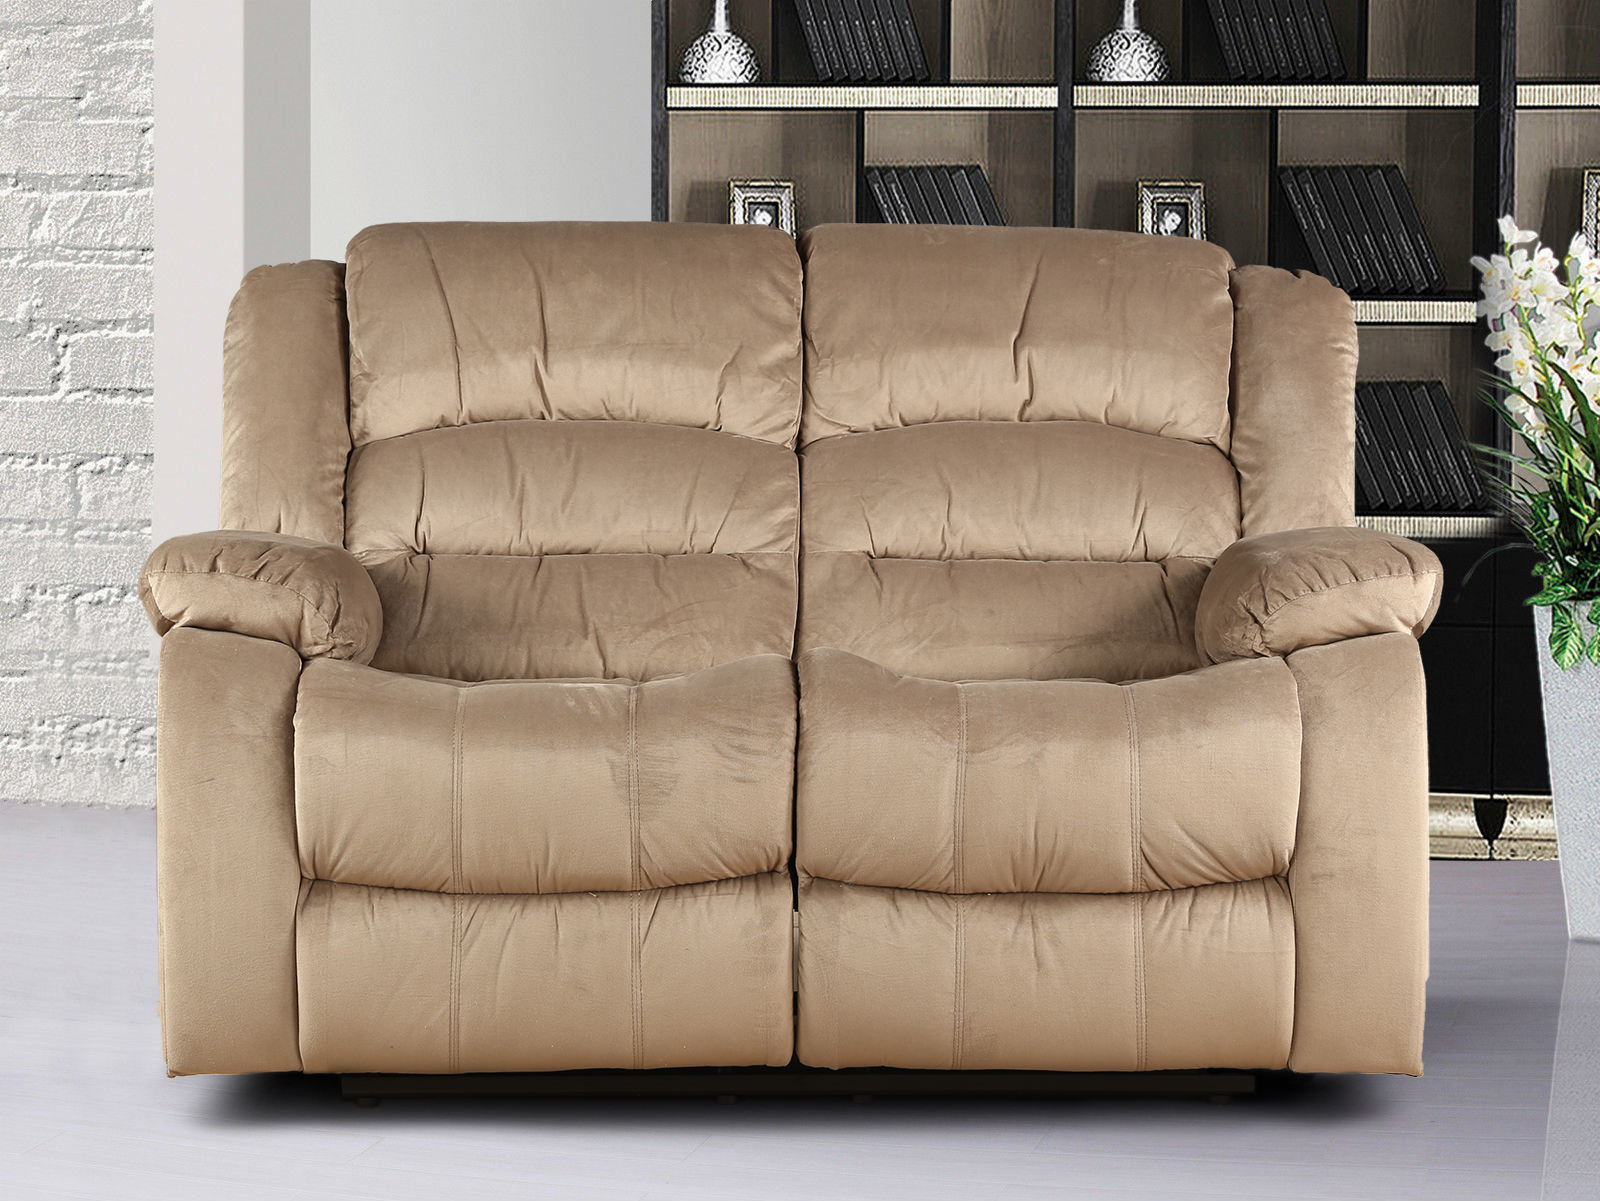 Bradford Fabric Two Seater Recliner in Camel Colour by HomeTown